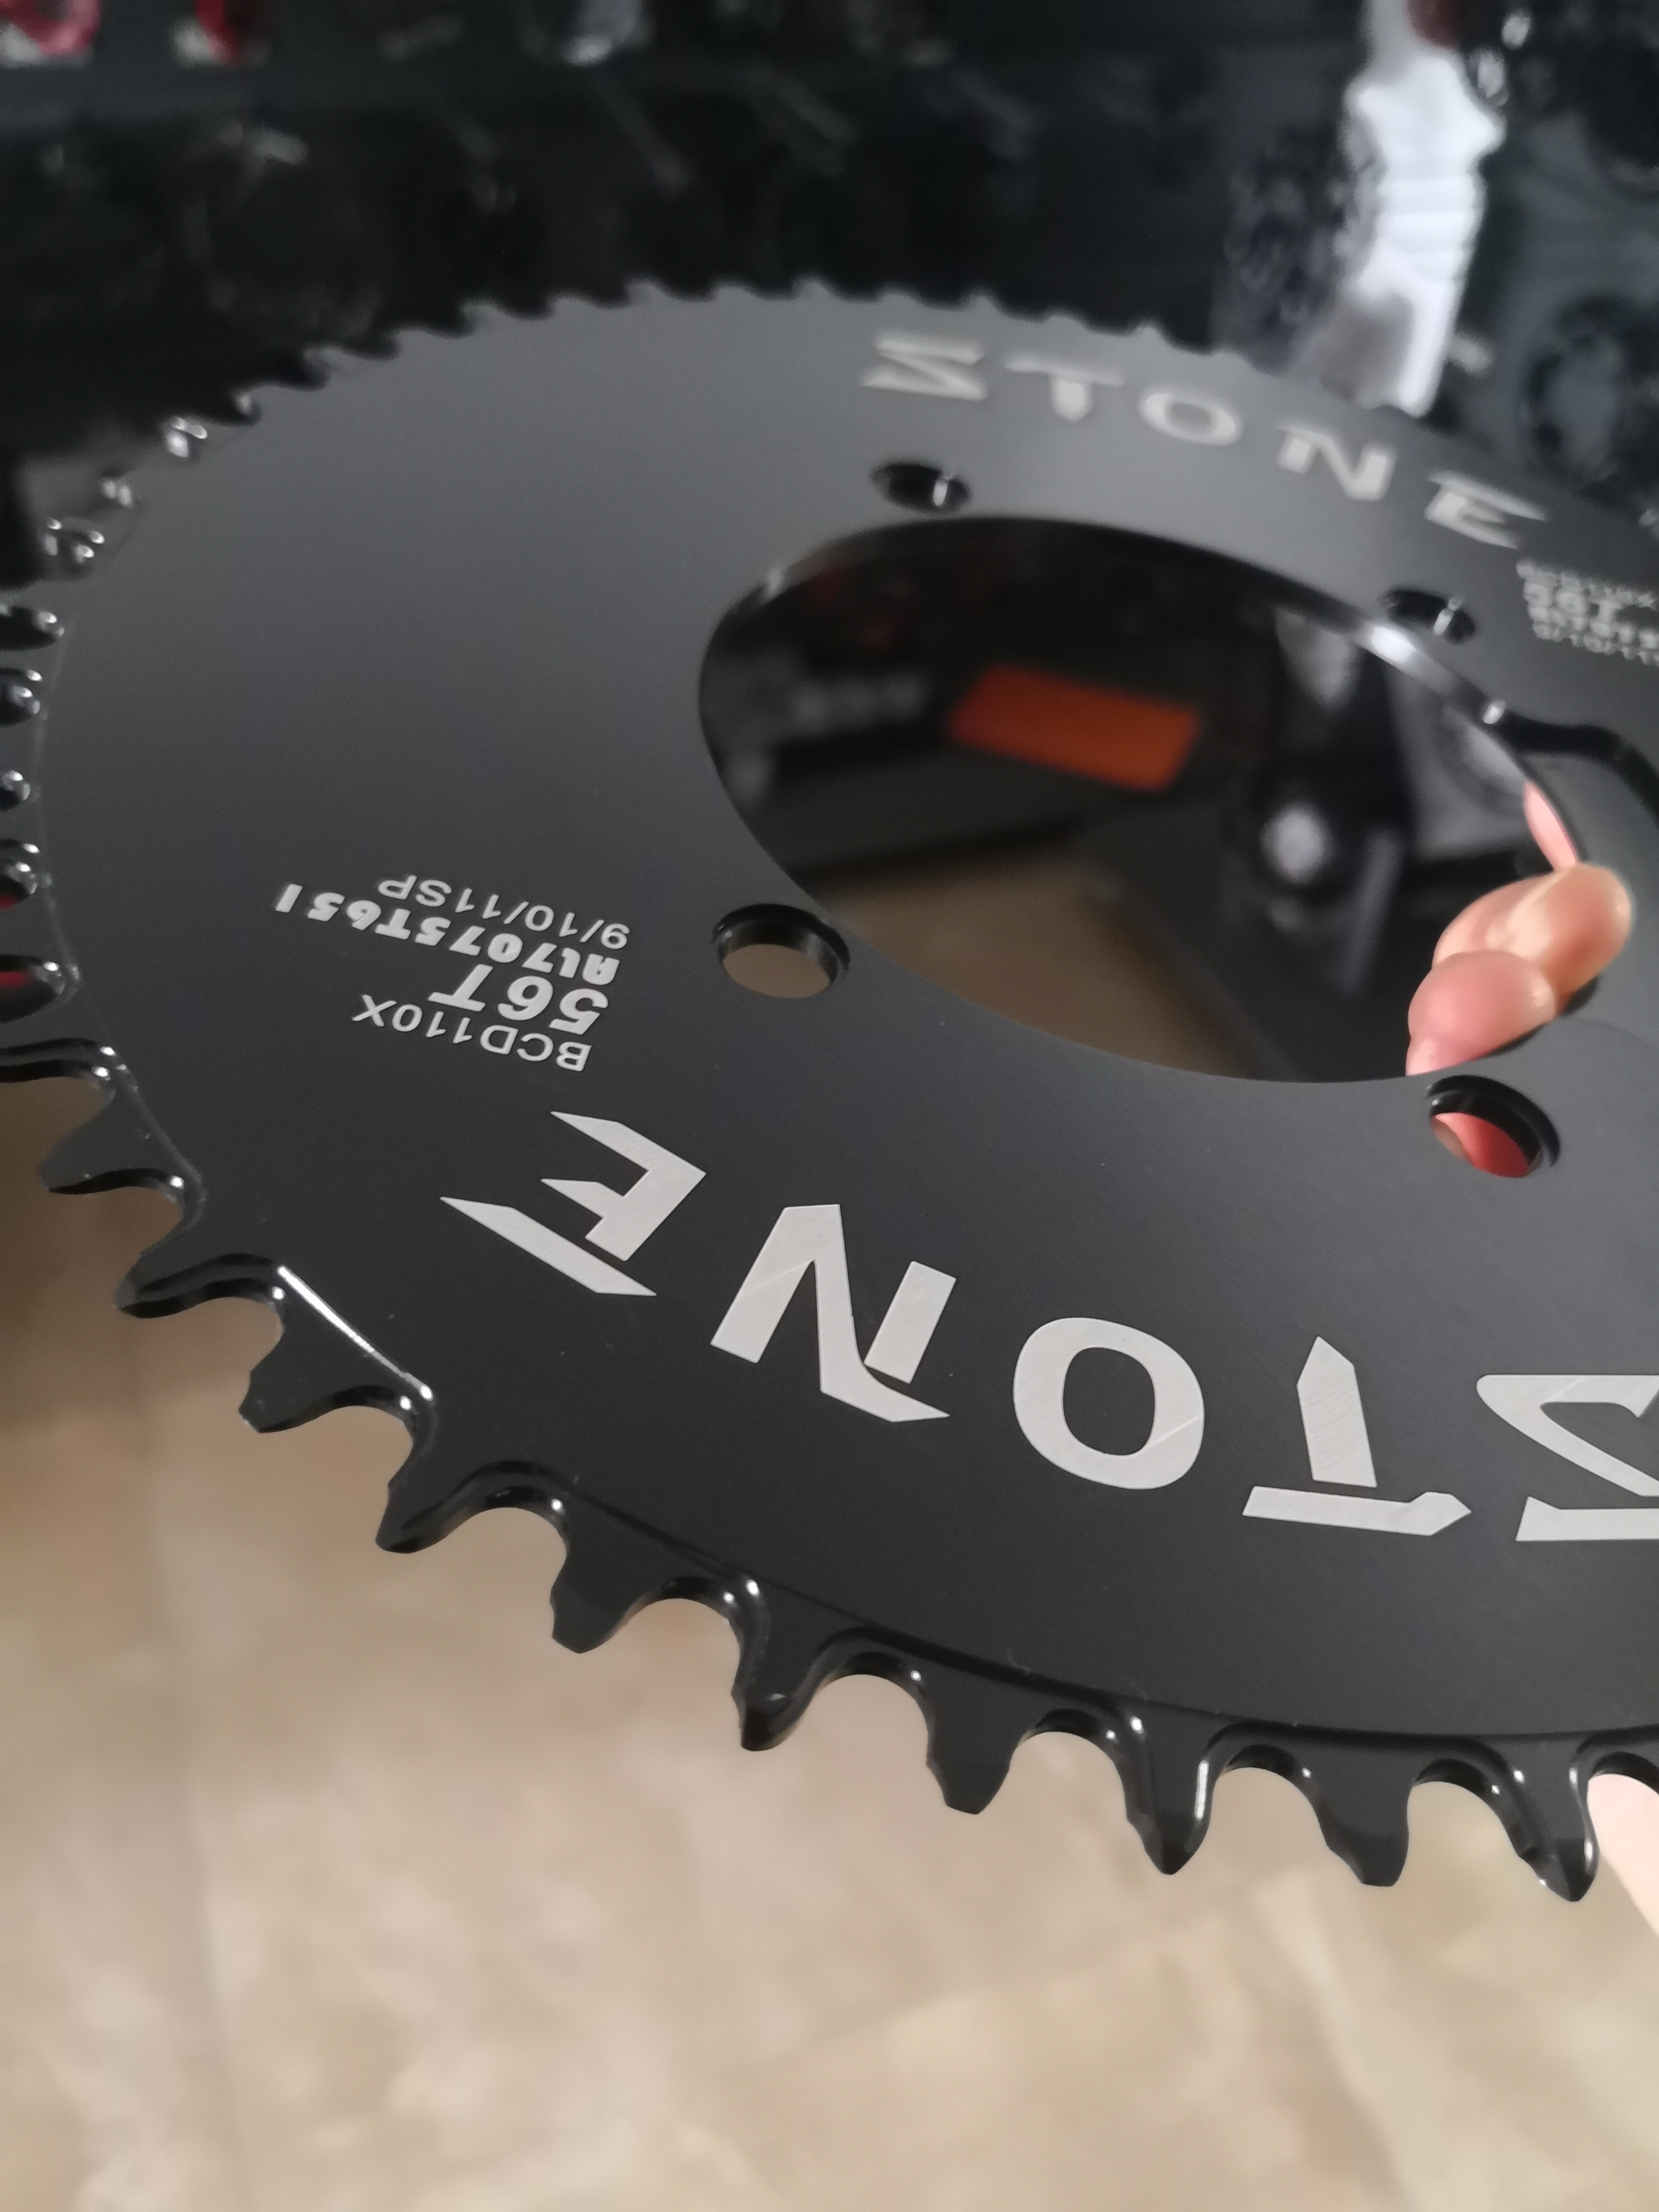 60T Narrow wide Circle Chainring BCD110 for SHIMANO 5800 FC-6800 4700 9000 34T